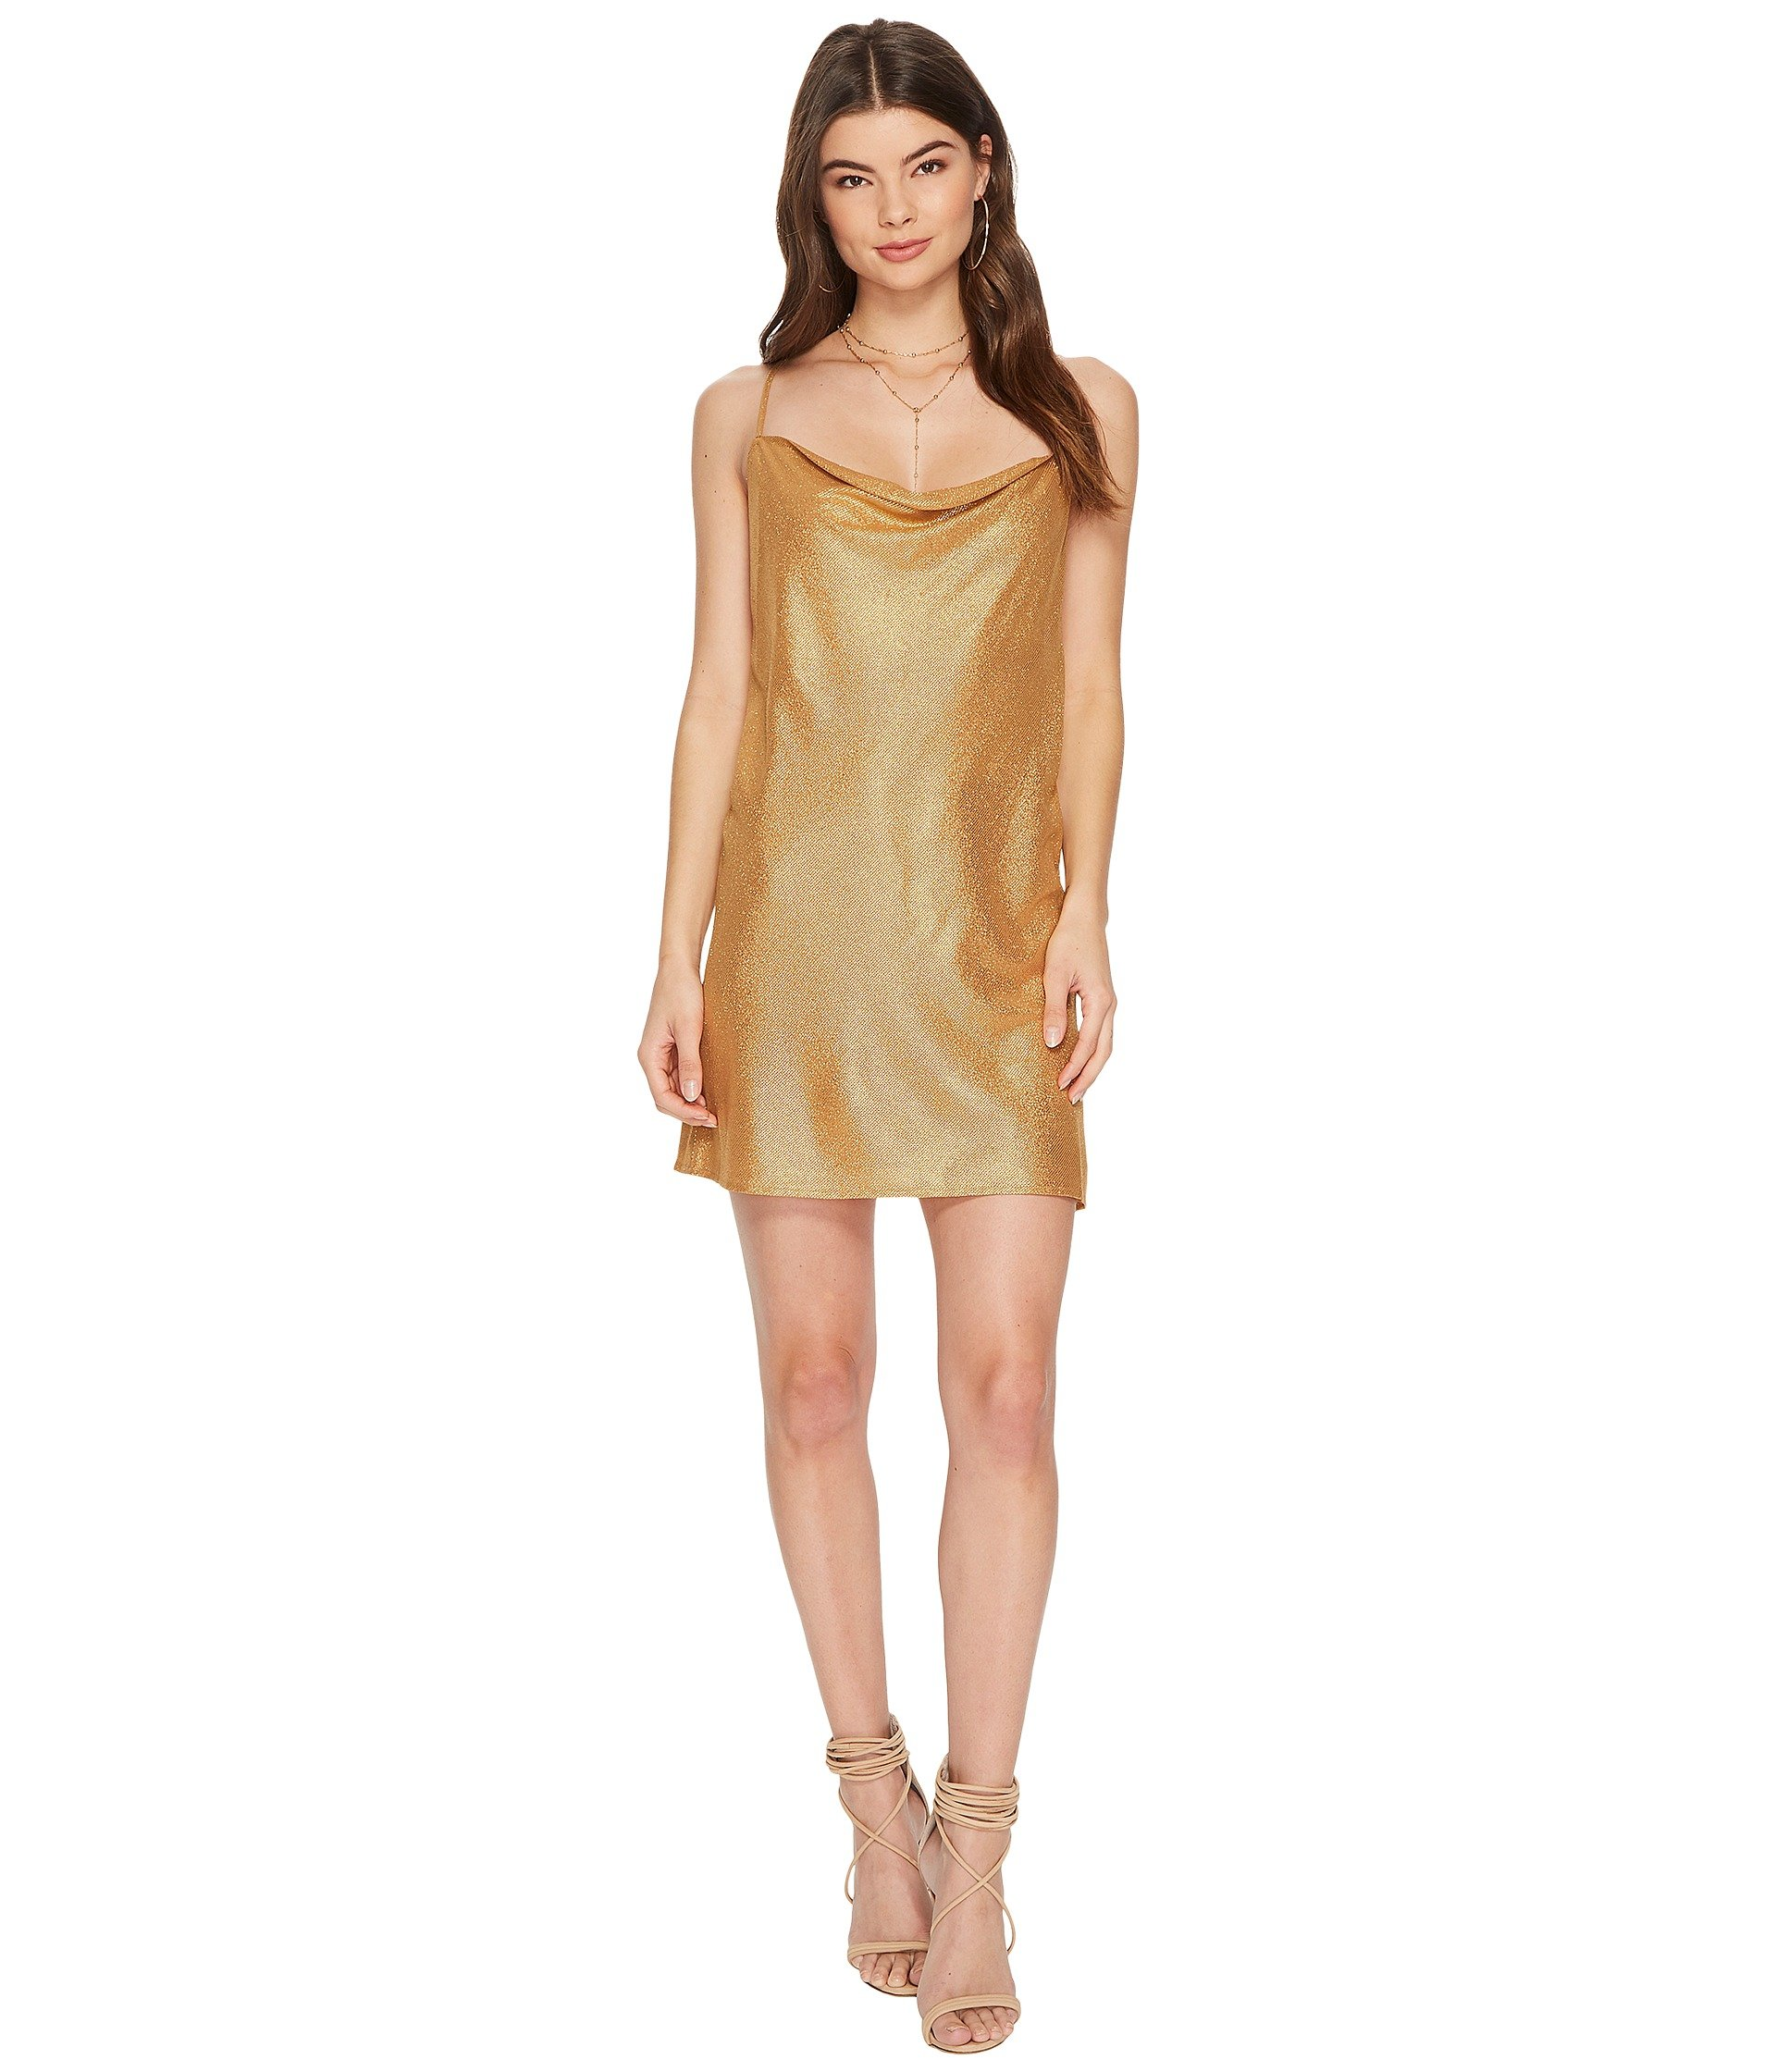 THE JETSET DIARIES Vay Cay Foil Slip, Gold Foil